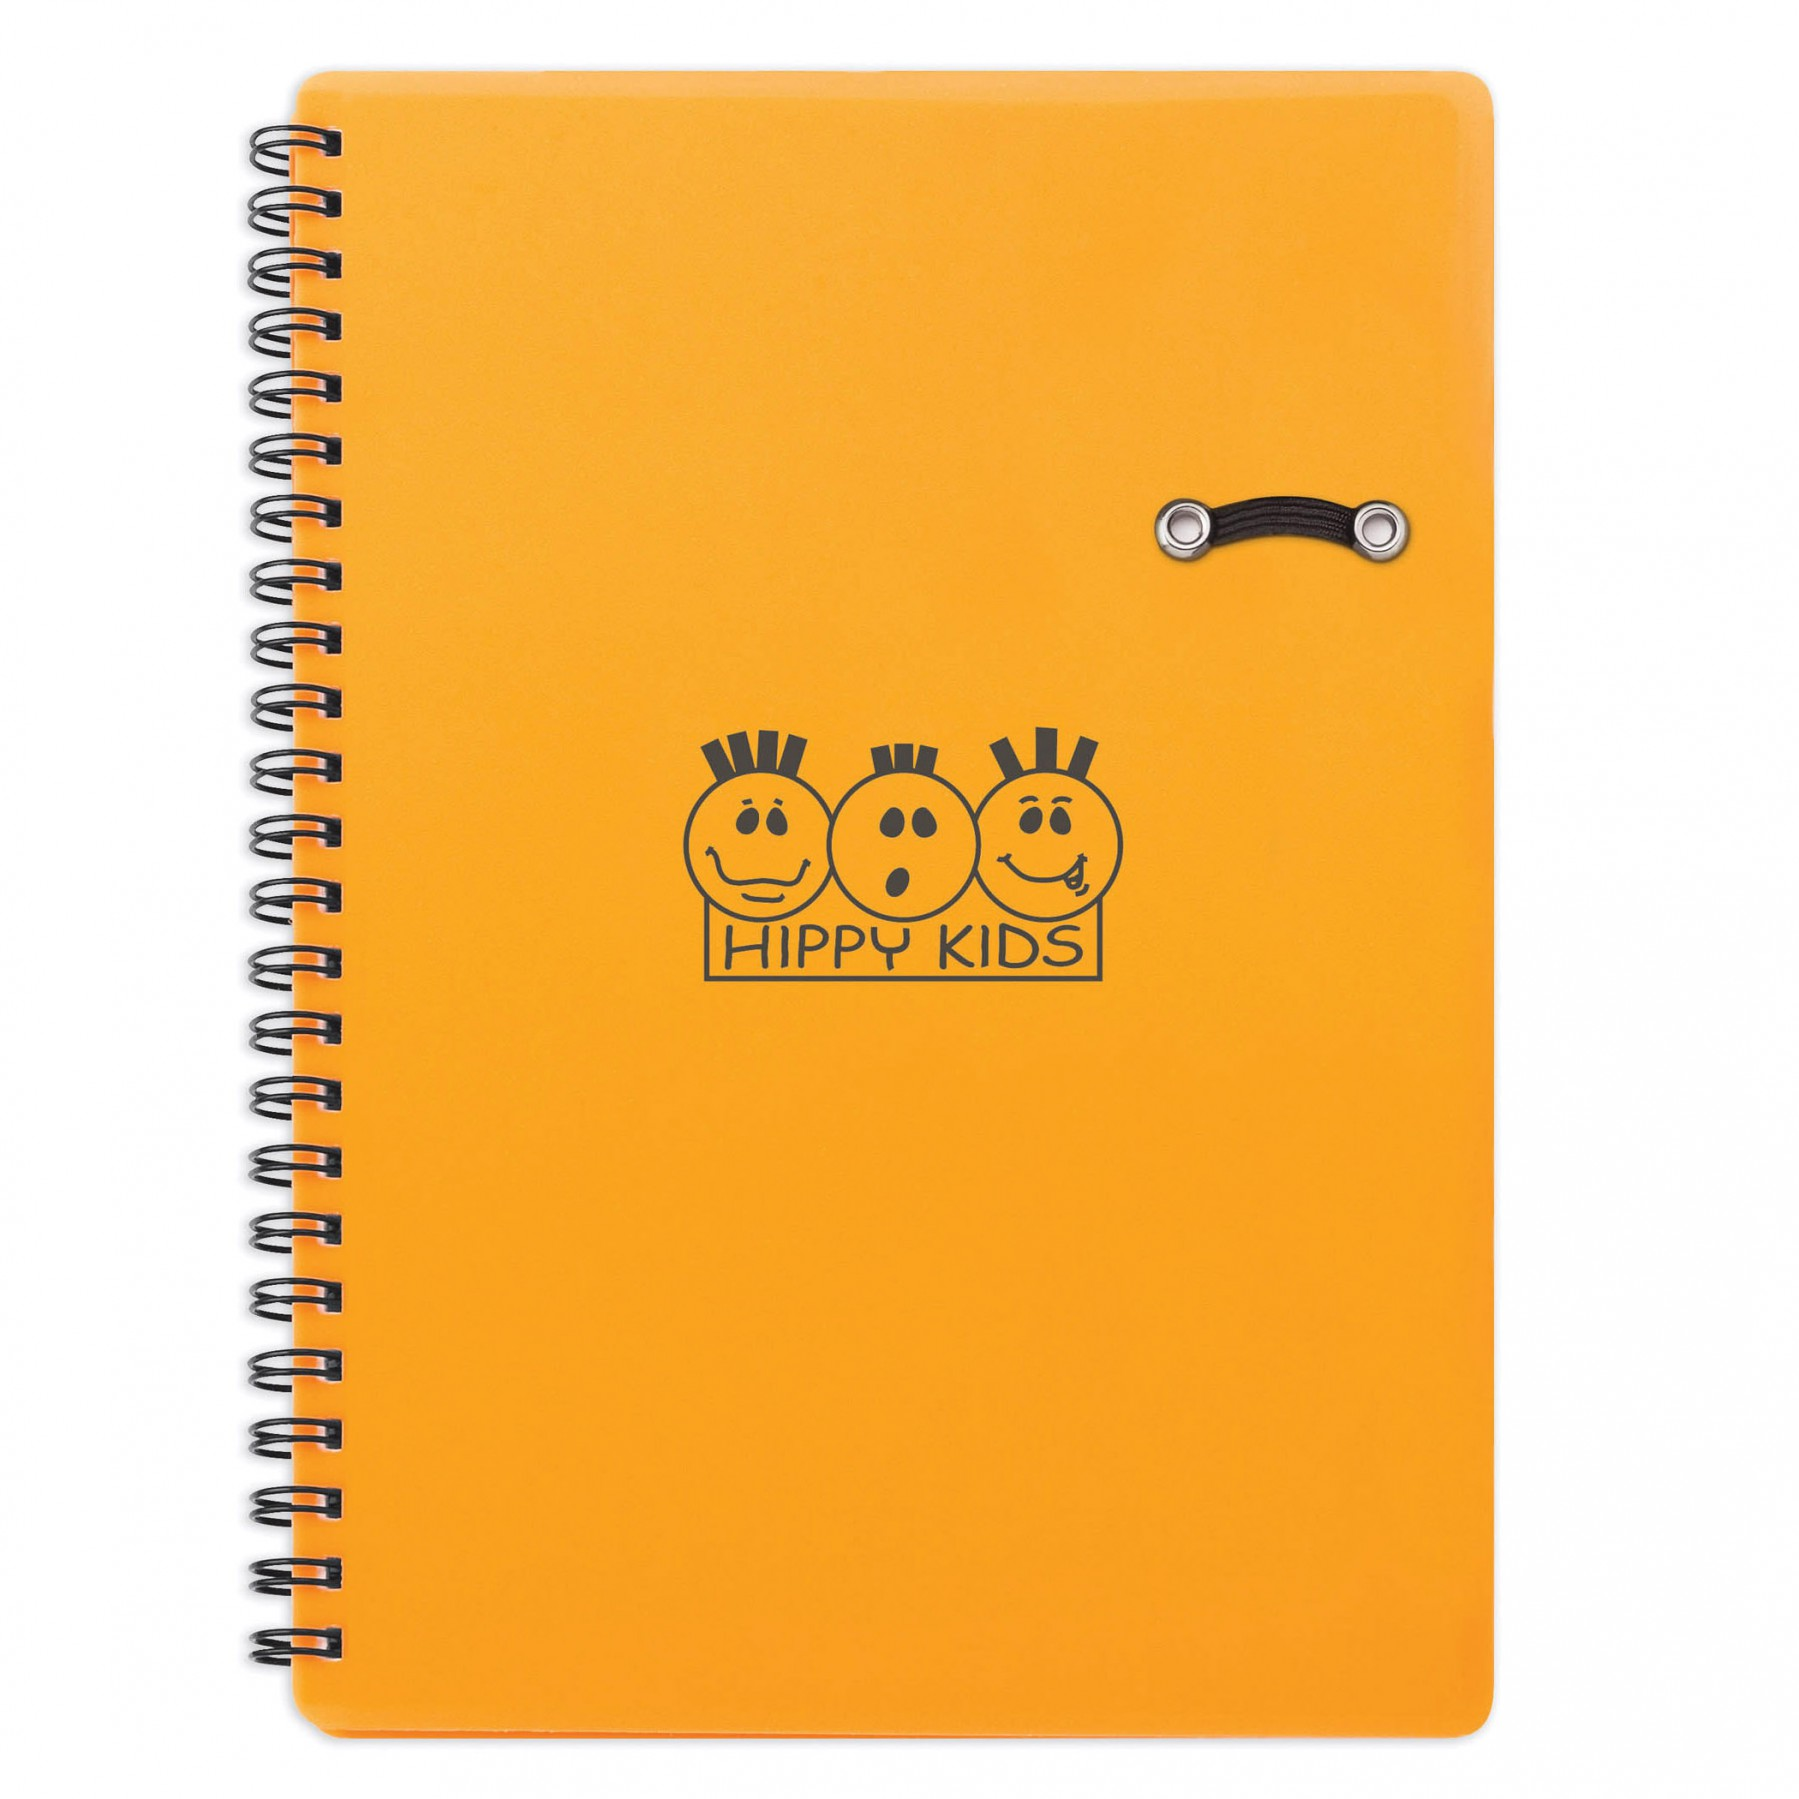 Neon Lights Notebook - 1 Colour Imprint (ST3108)